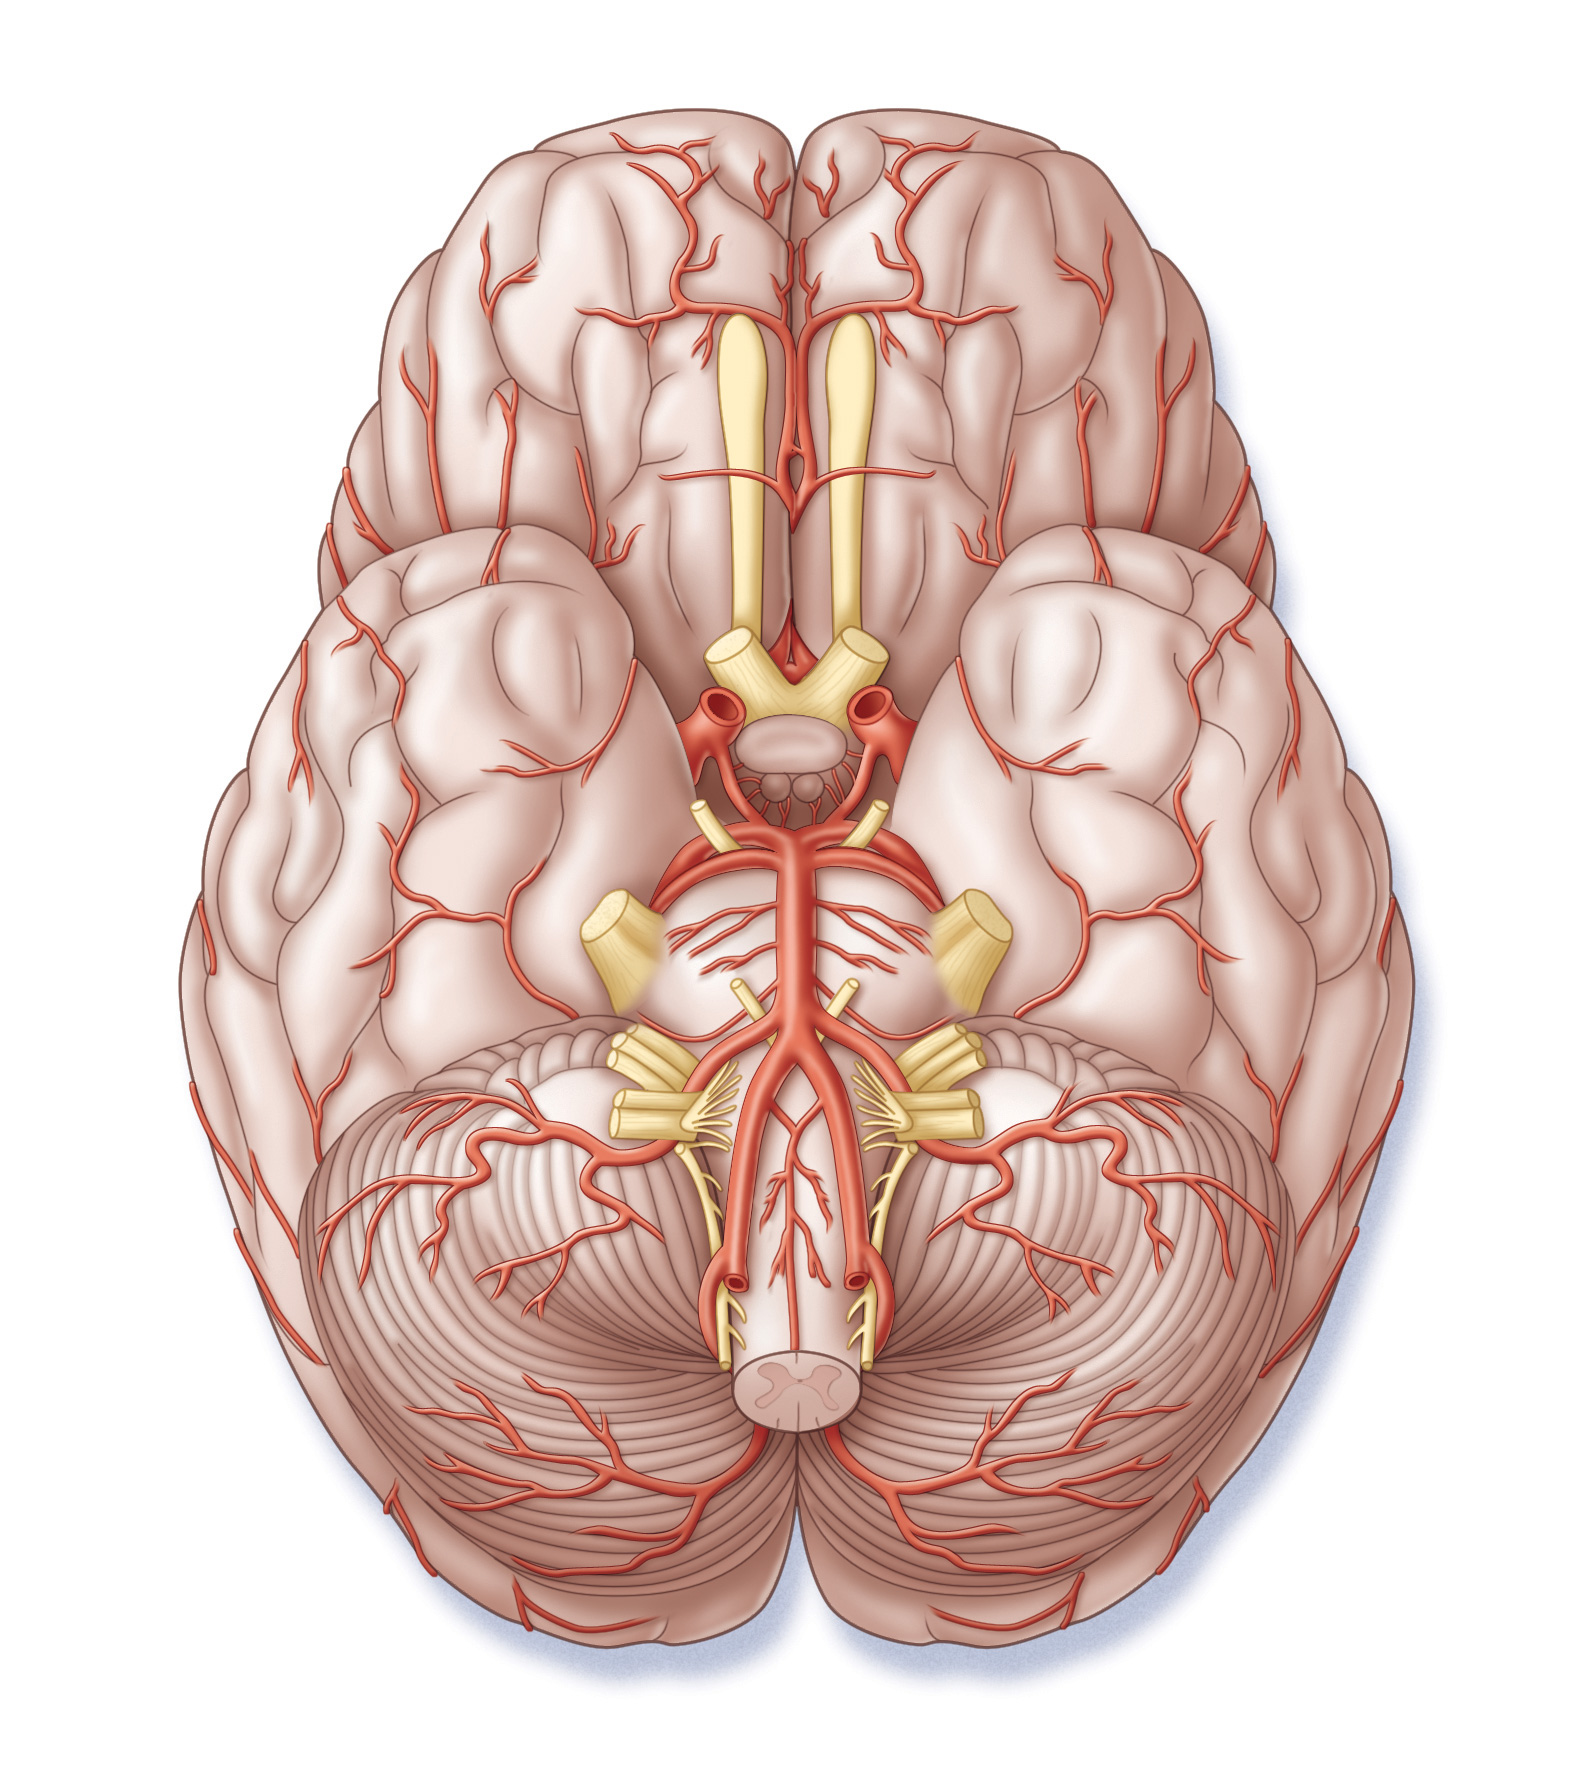 Base of brain with vasculature and nerves